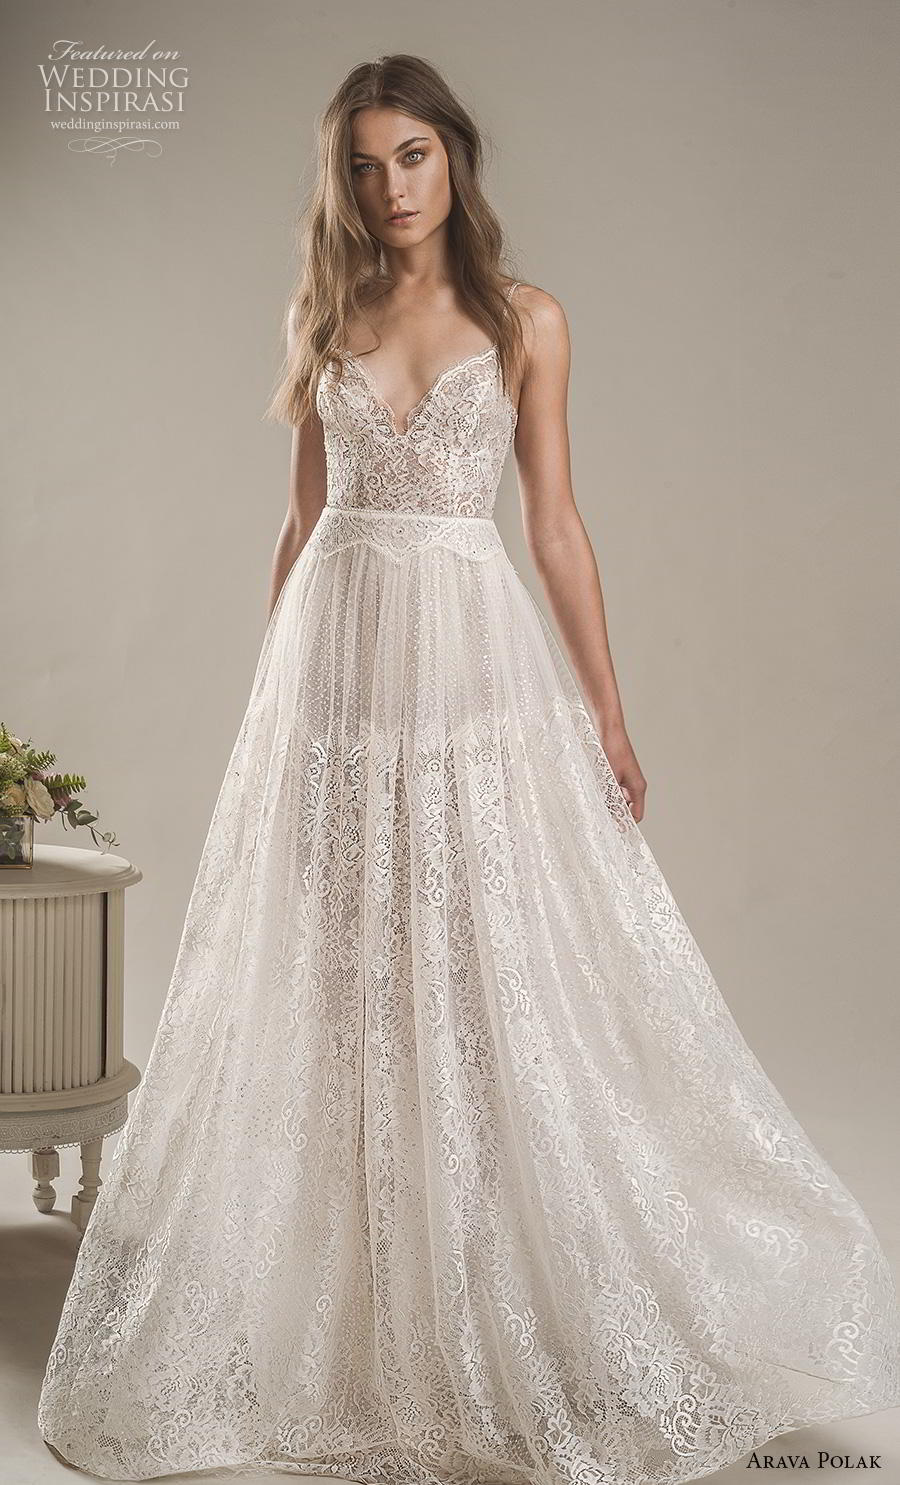 arava polak 2019 bridal sleeveless spaghetti strap deep sweetheart neckline full embellishment romantic bohemian soft a line wedding dress backless low scoop back sweep train (6) mv